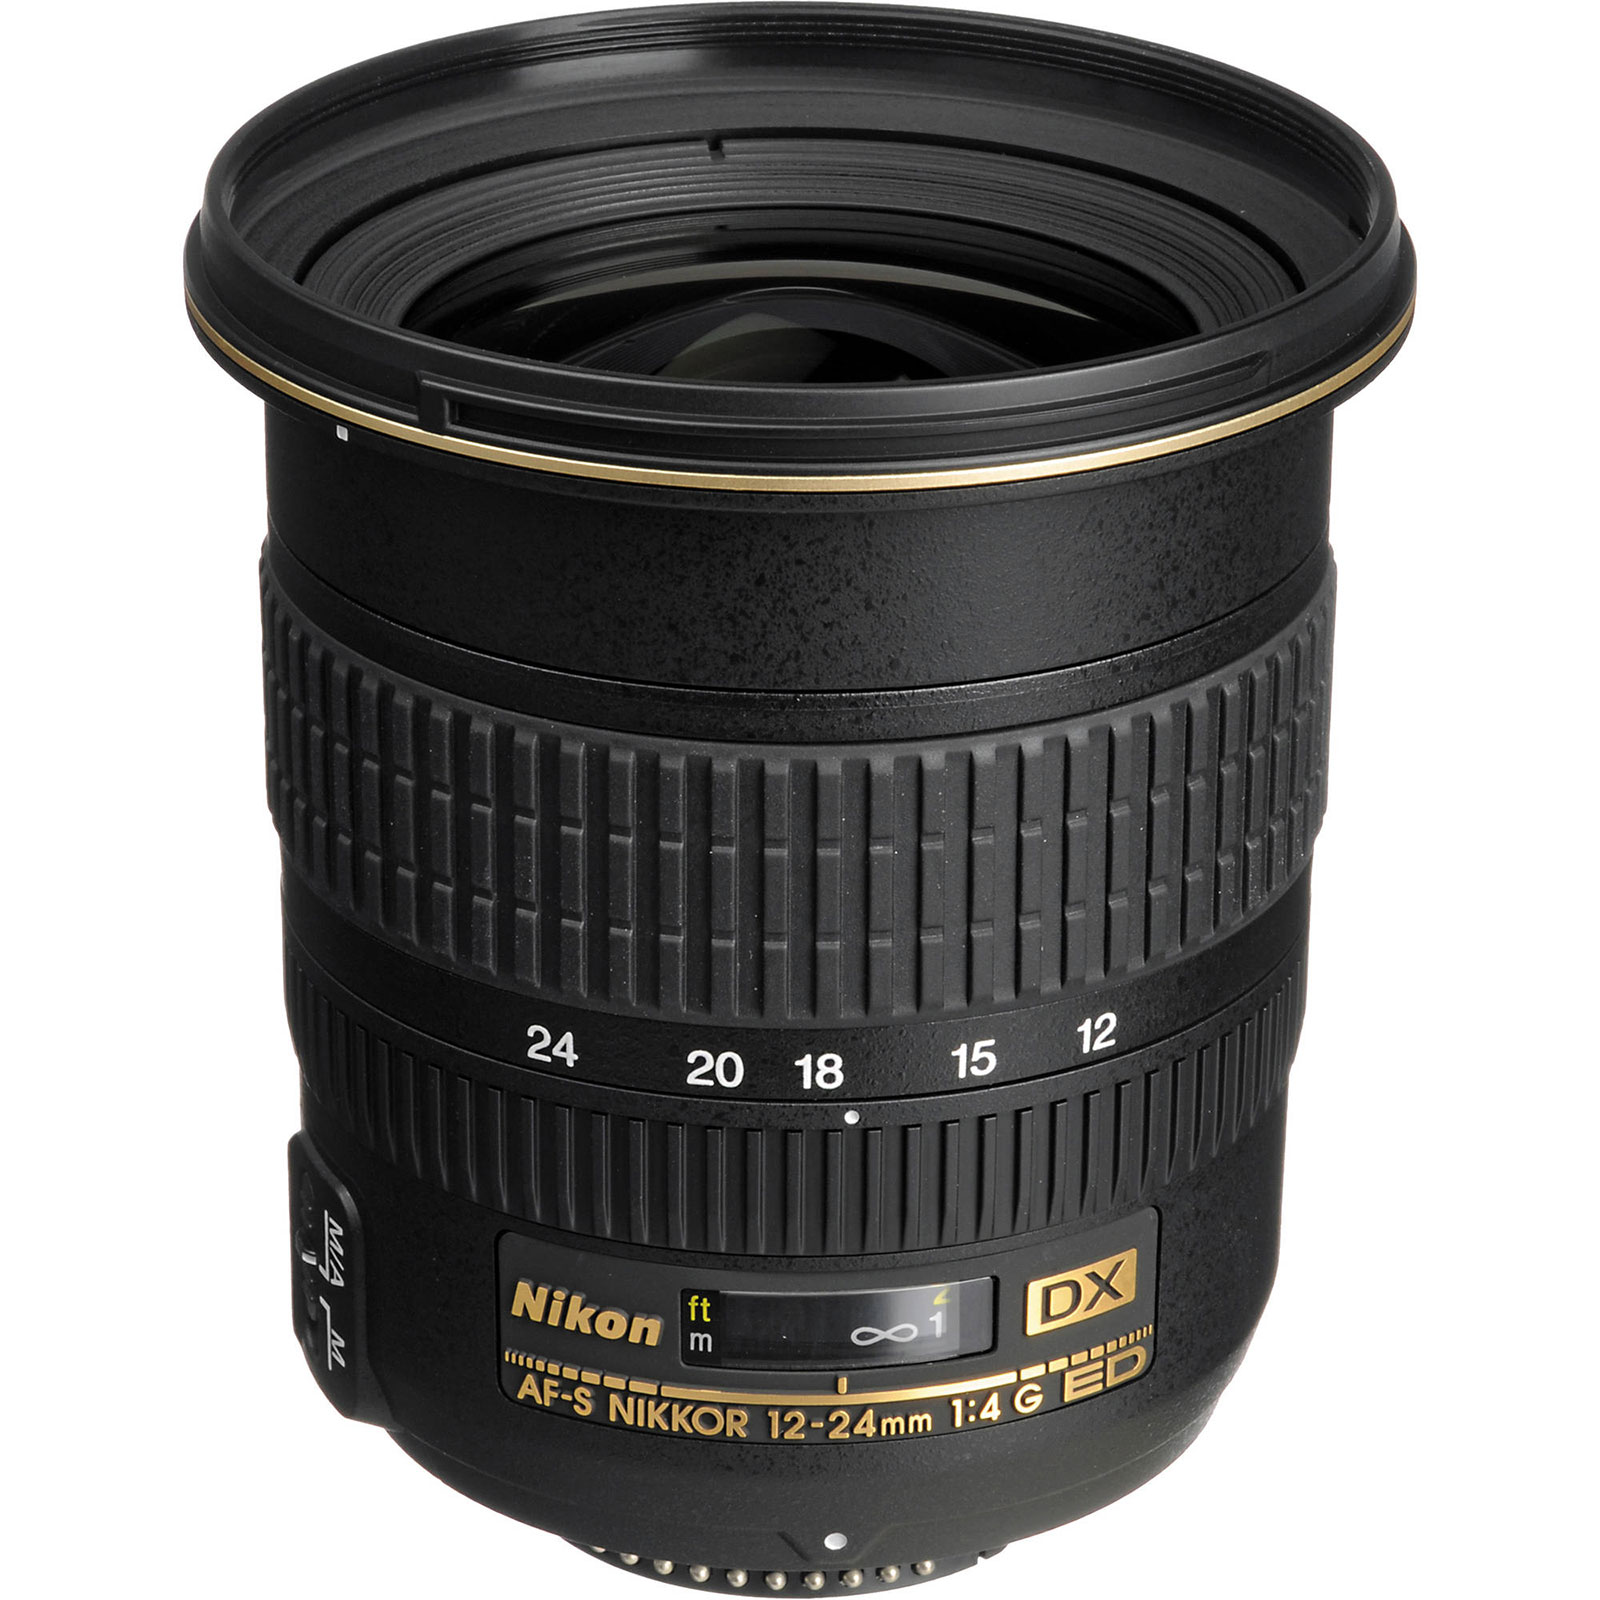 Nikon 12-24mm f/4 G DX AF-S ED-IF Zoom-Nikkor Lens